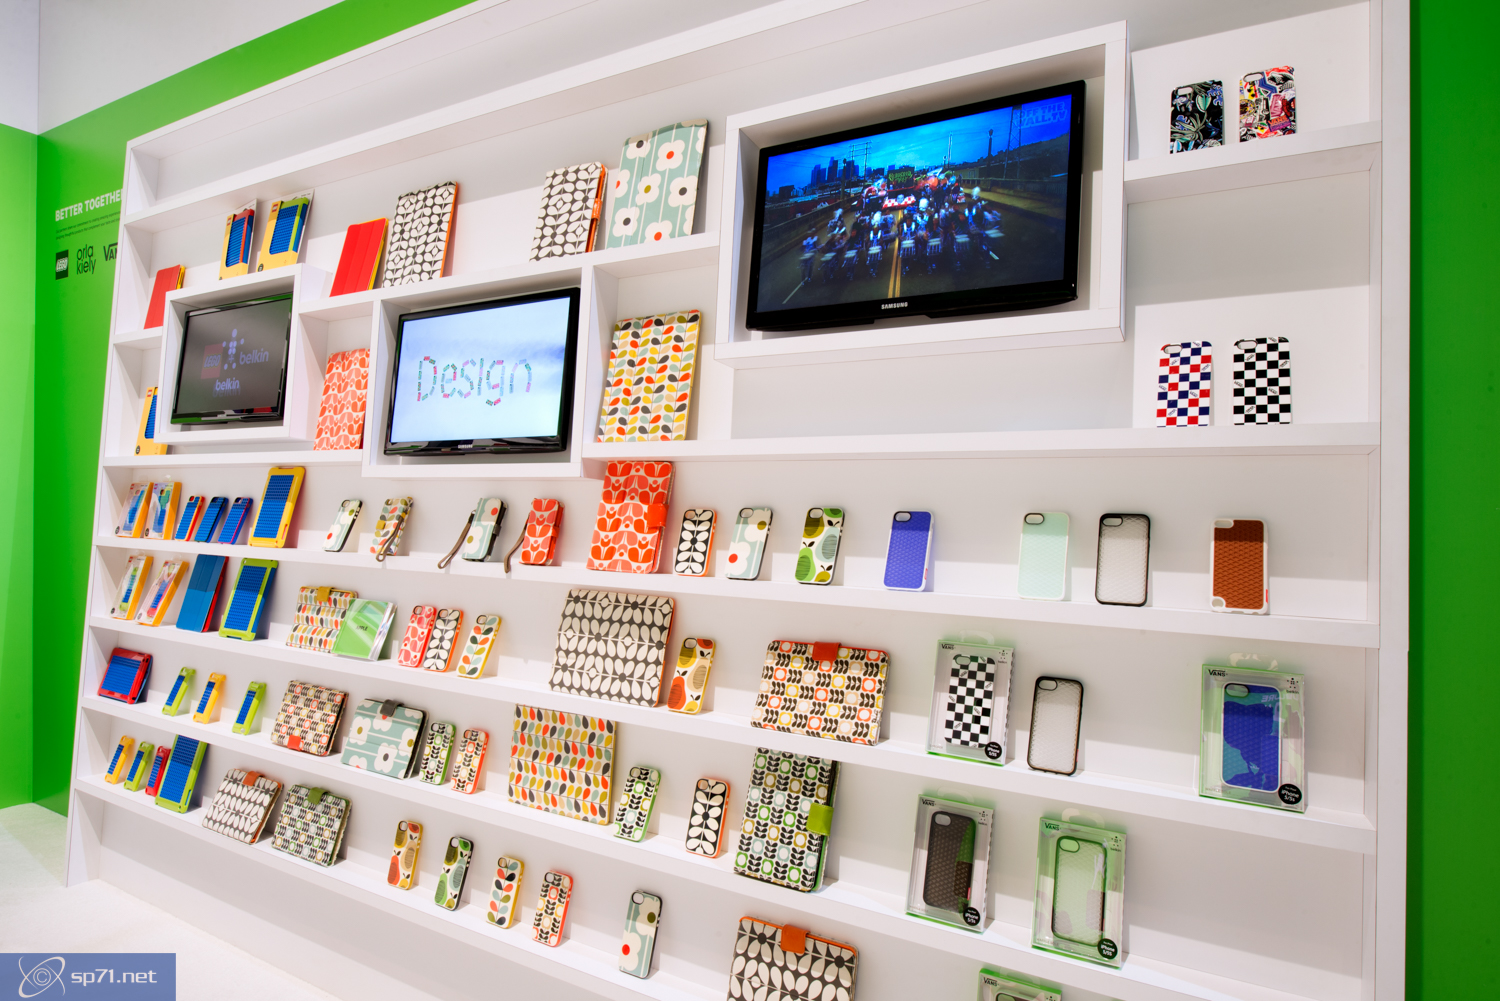 �timothydeal_ces2014_Belkin_photography_source-27.jpg